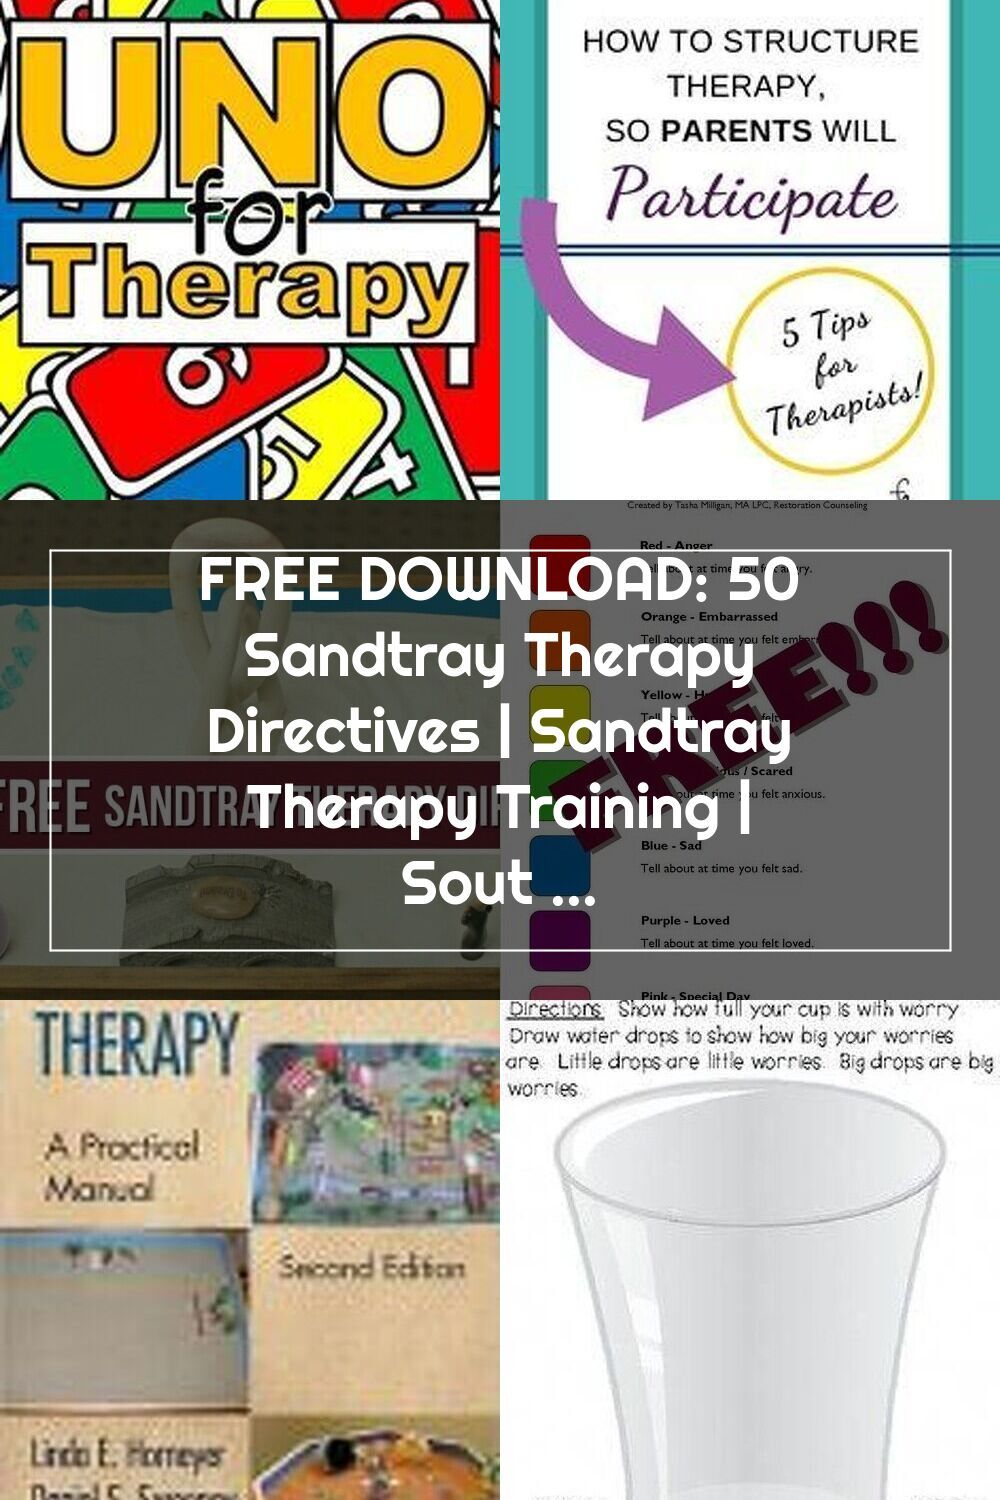 Free Download 50 Sandtray Therapy Directives